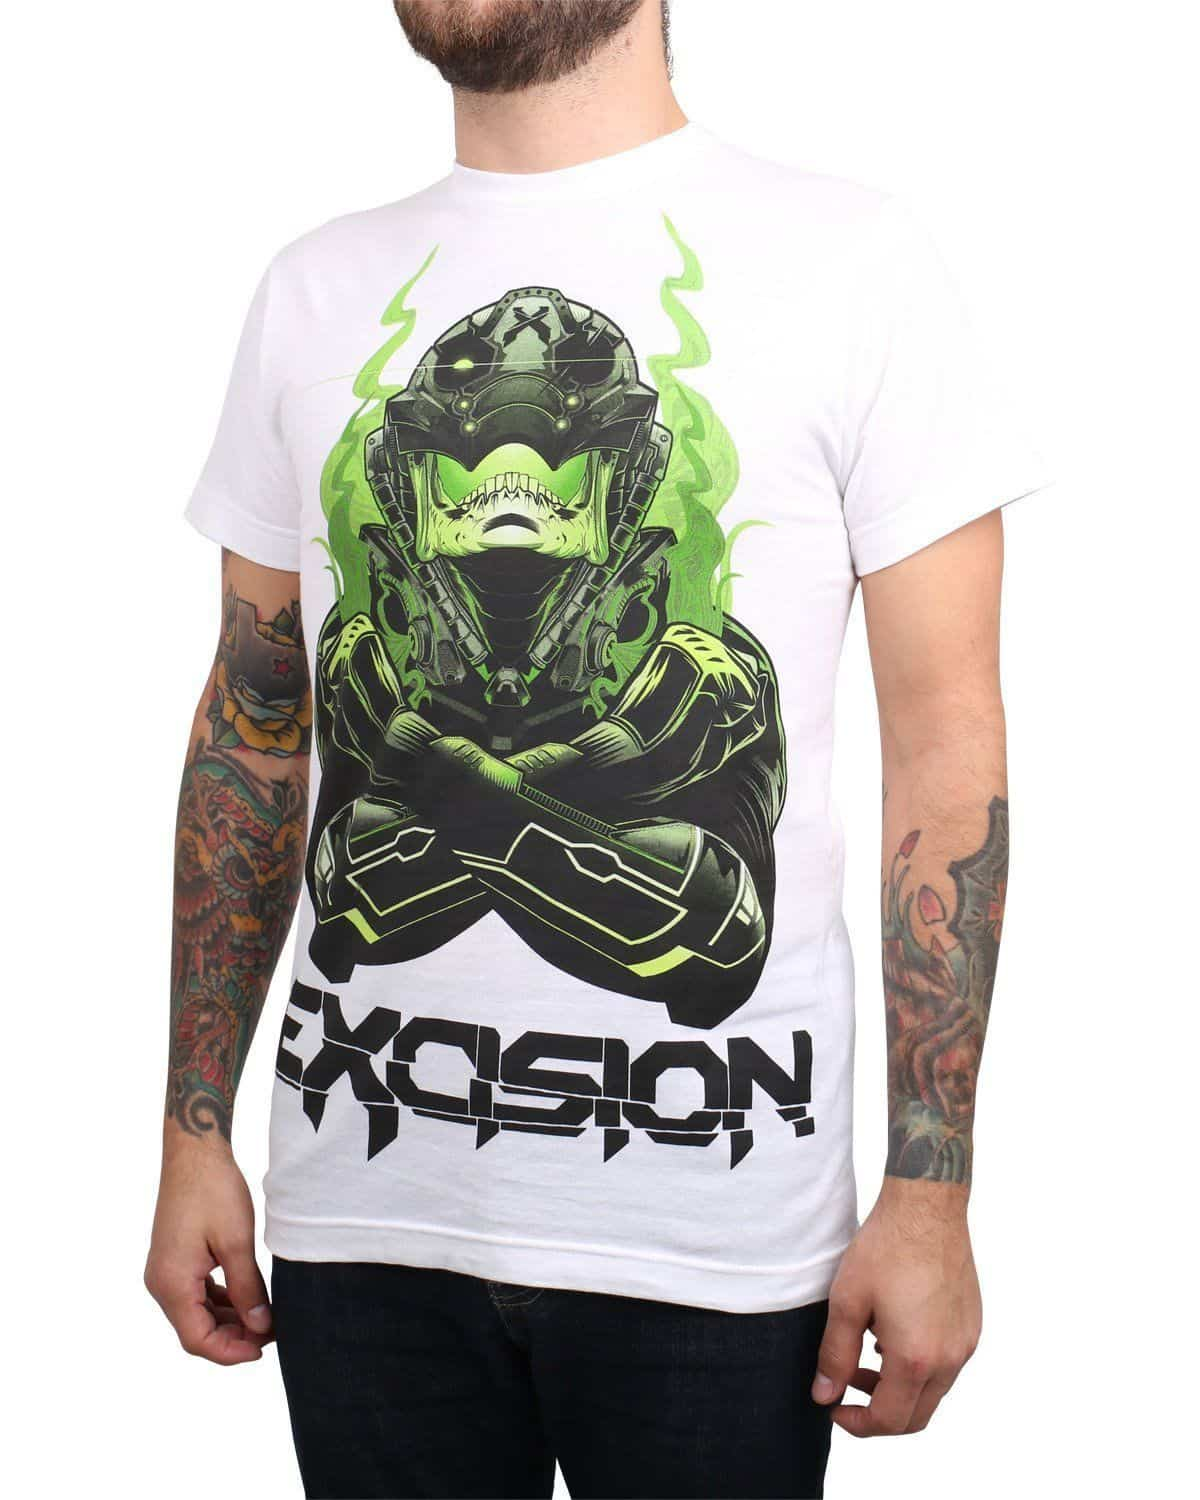 Excision 'Skull Face X Up' Unisex T-Shirt